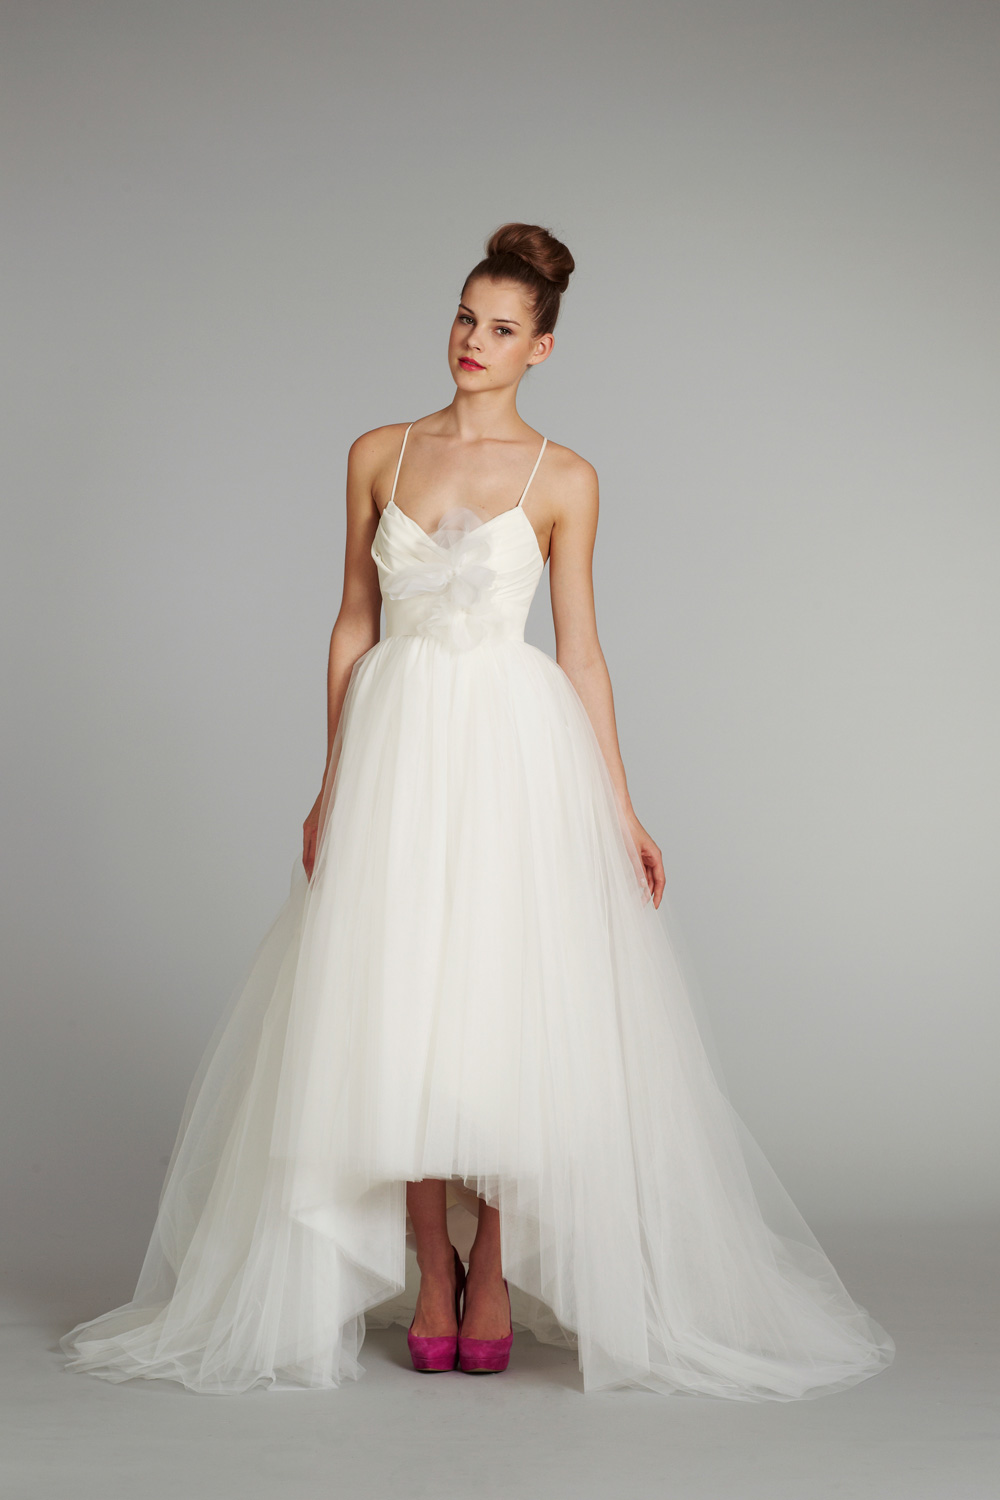 2012 Wedding Dresses Bridal Gown Blush Collection For Jlm